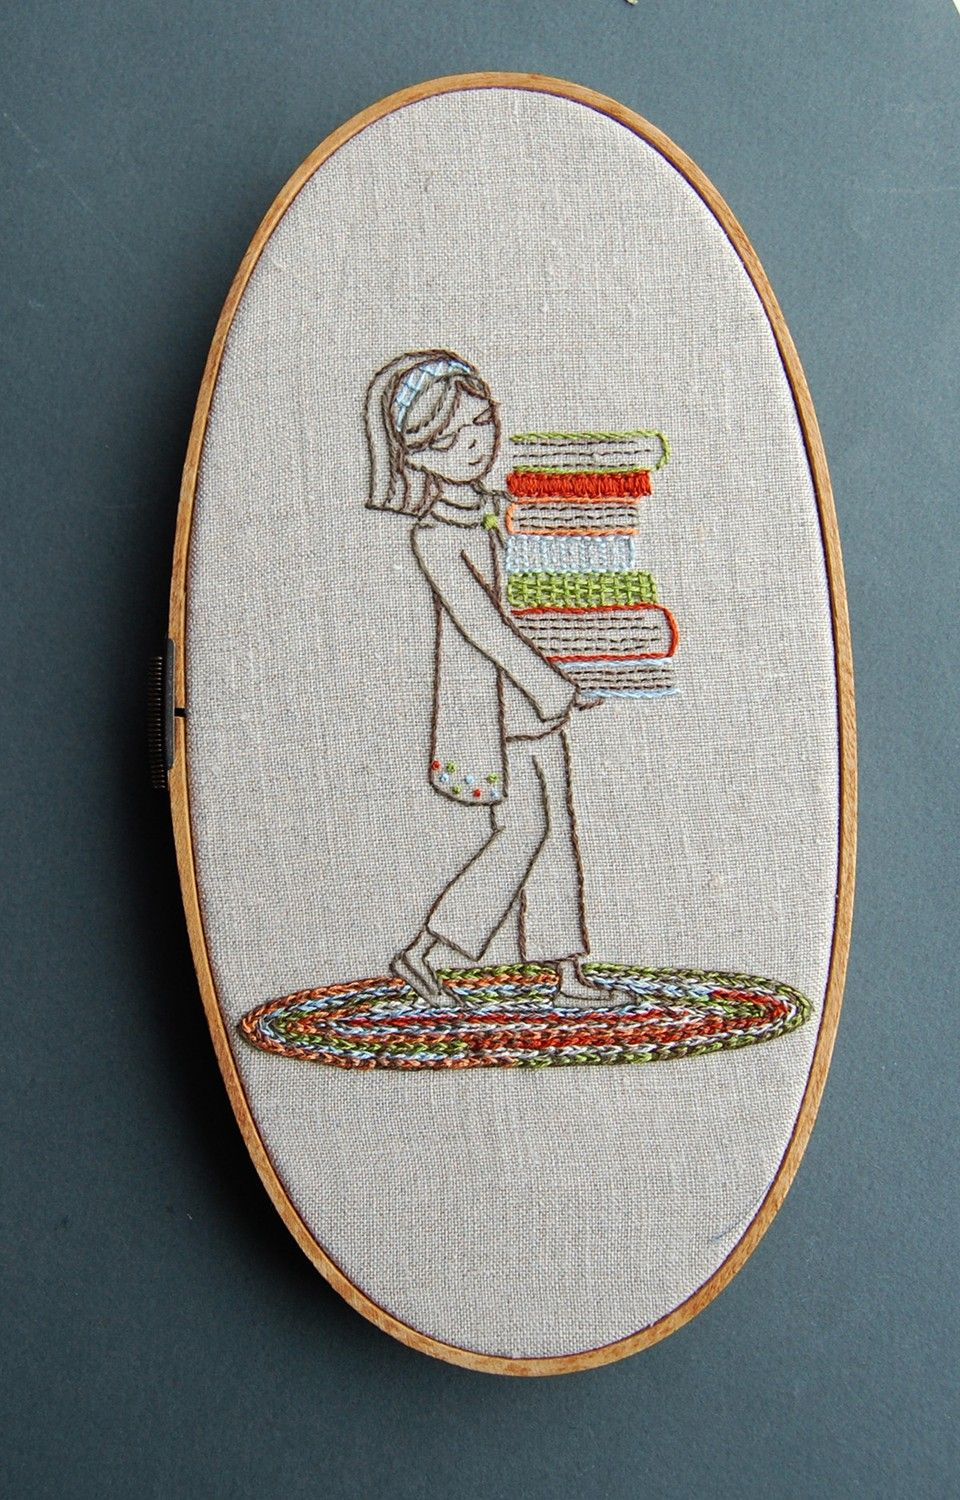 Embroidery Patterns, BOOKSMART Hand Embroidery Patterns. $6.00, via ...